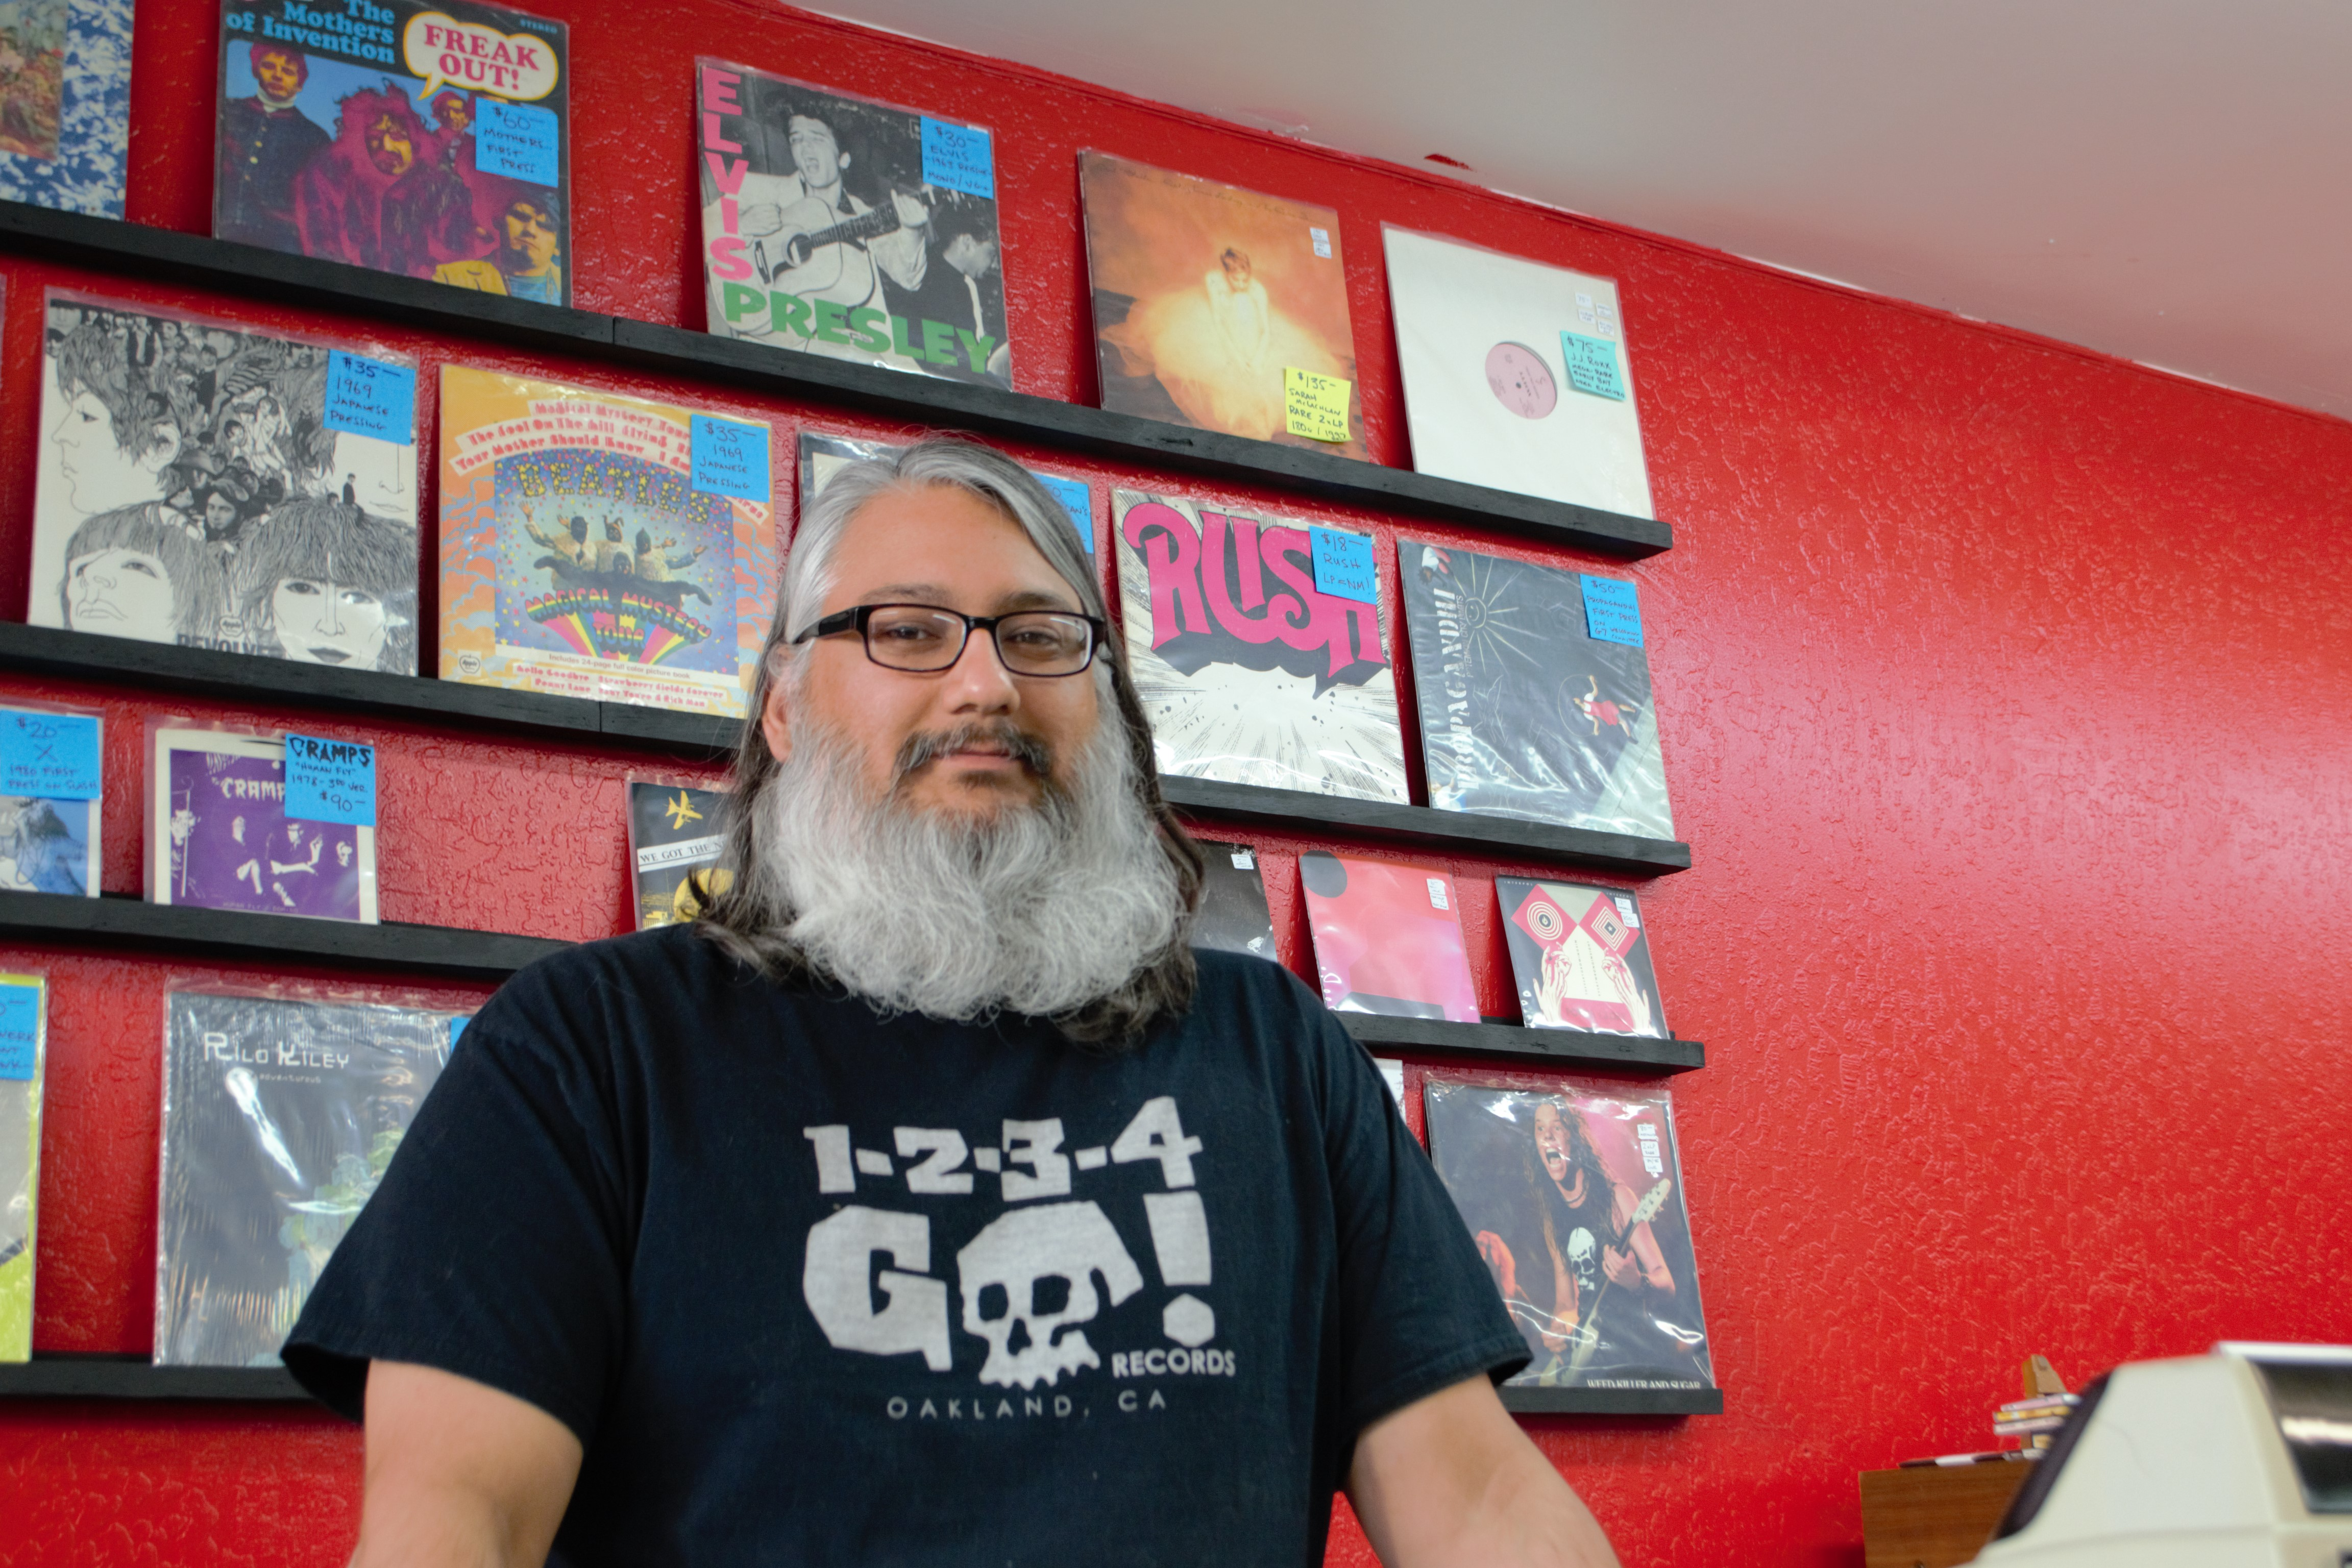 Reno Record Store Owner